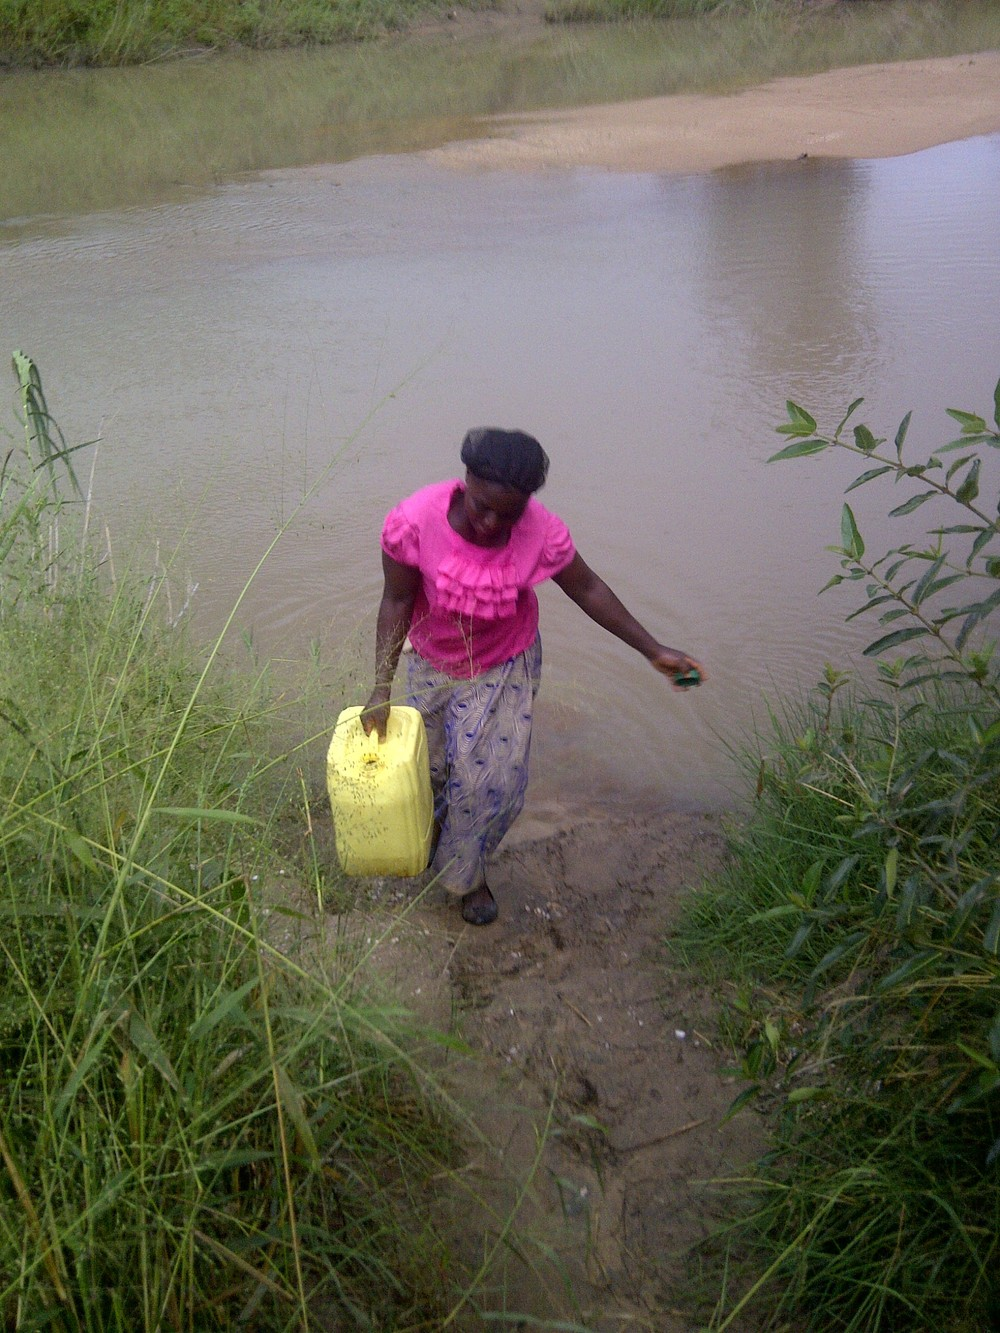 A lady gathers water for her family in Sichimwa, Zambia.